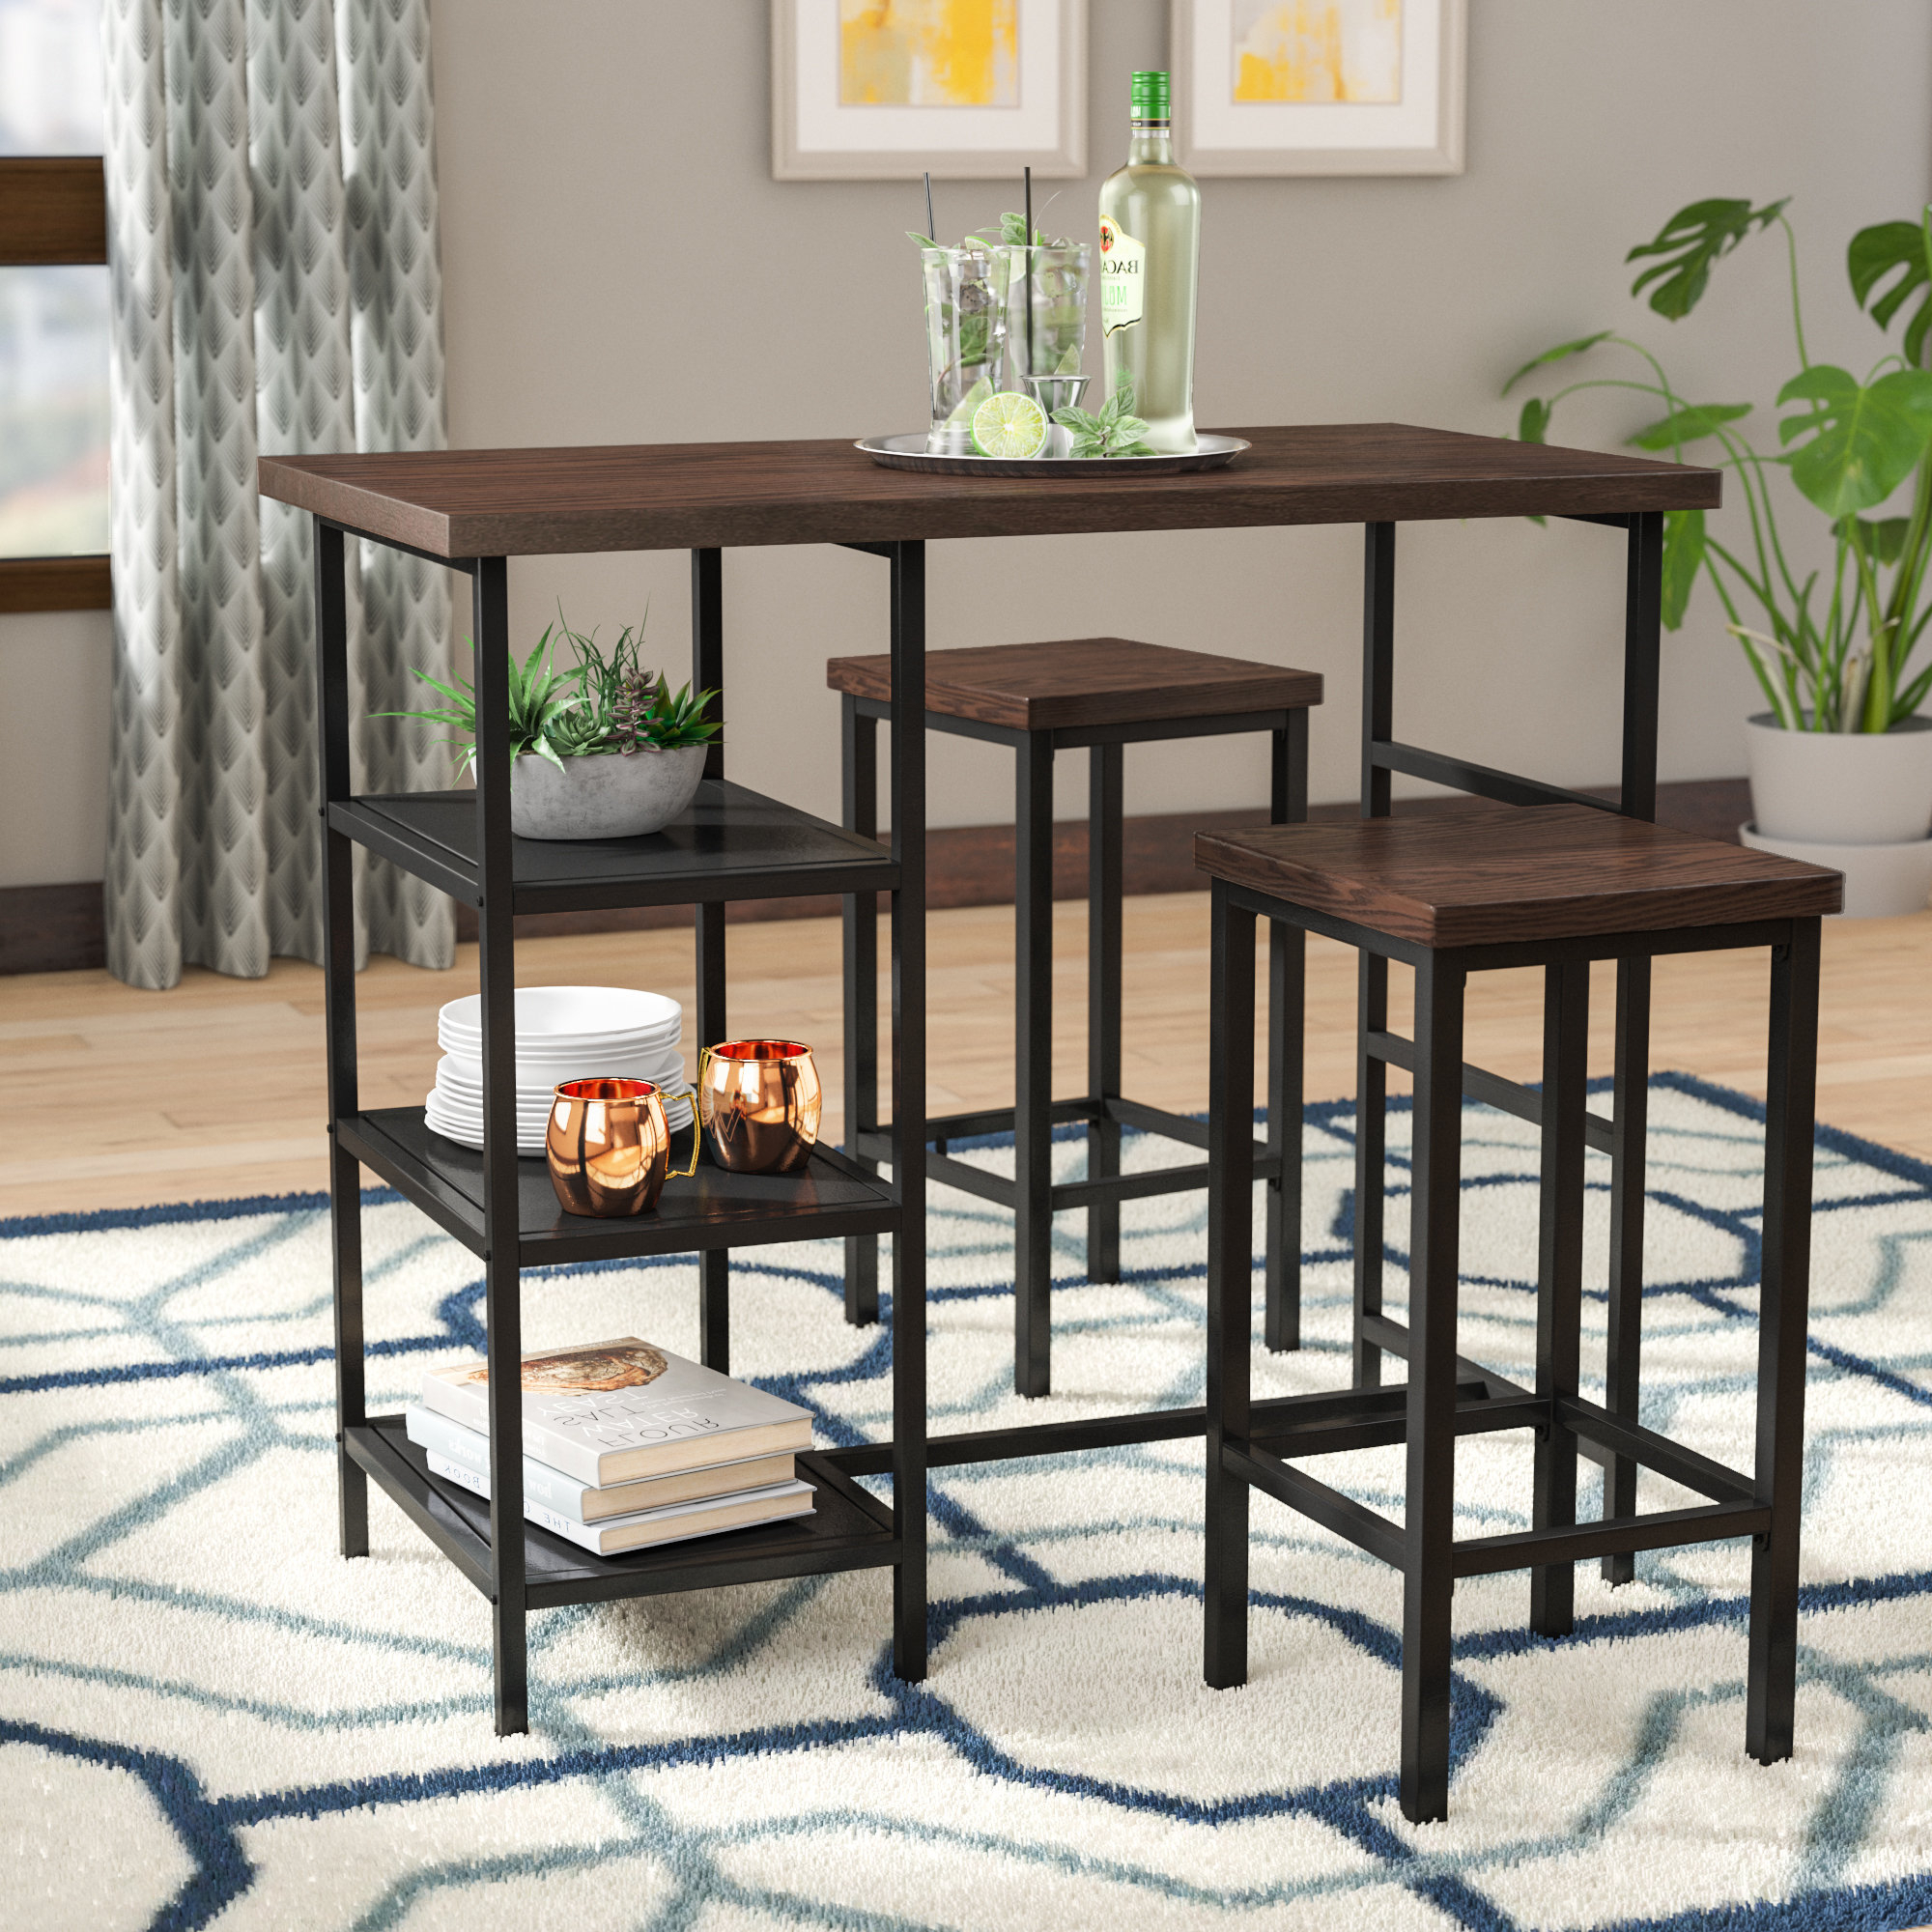 Wayfair Throughout Most Up To Date Frida 3 Piece Dining Table Sets (View 17 of 20)